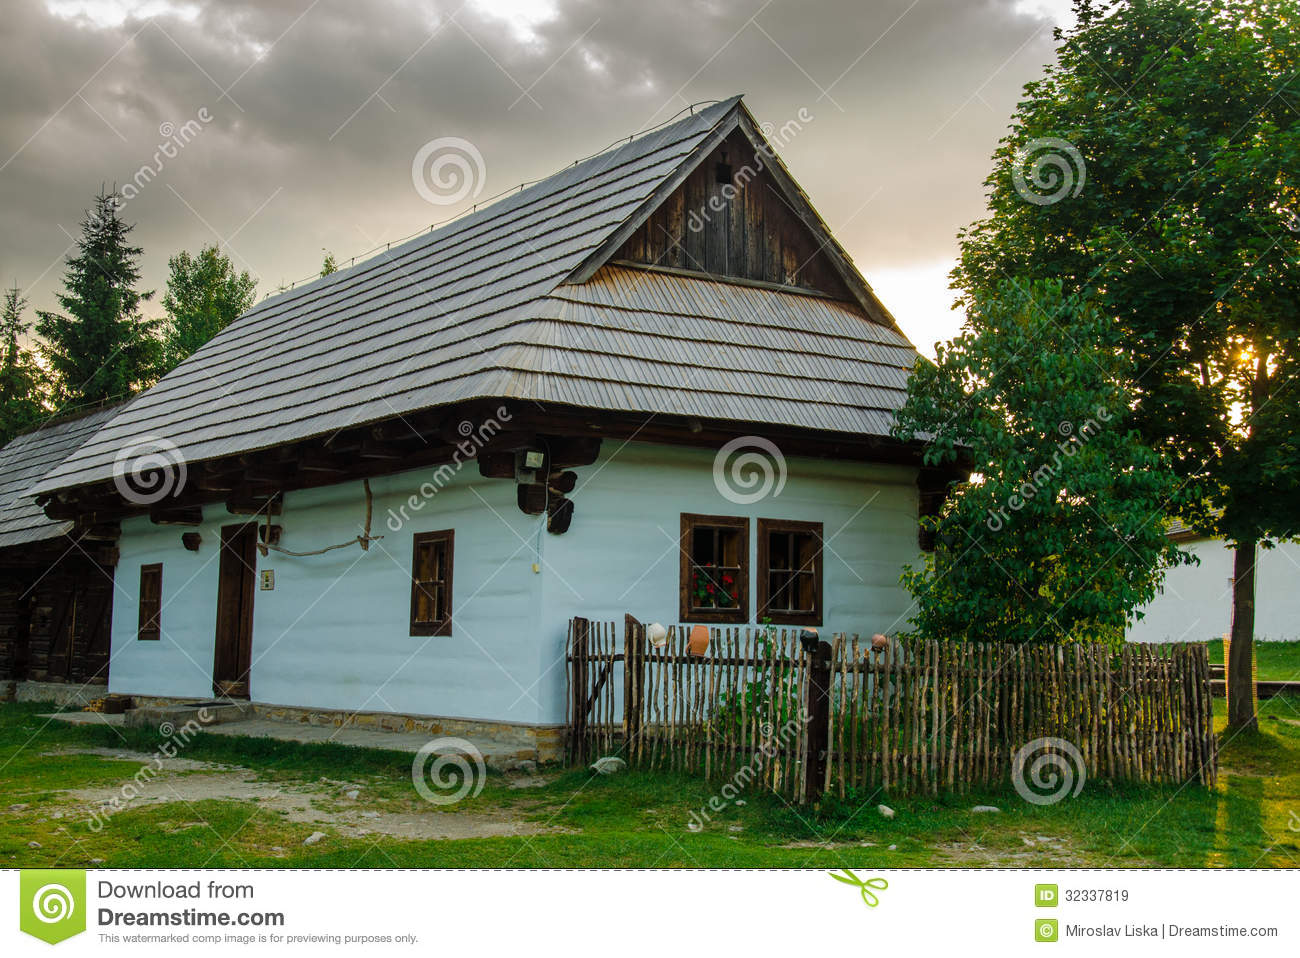 Authentic Folk House in a Museum of Slovak Traditions